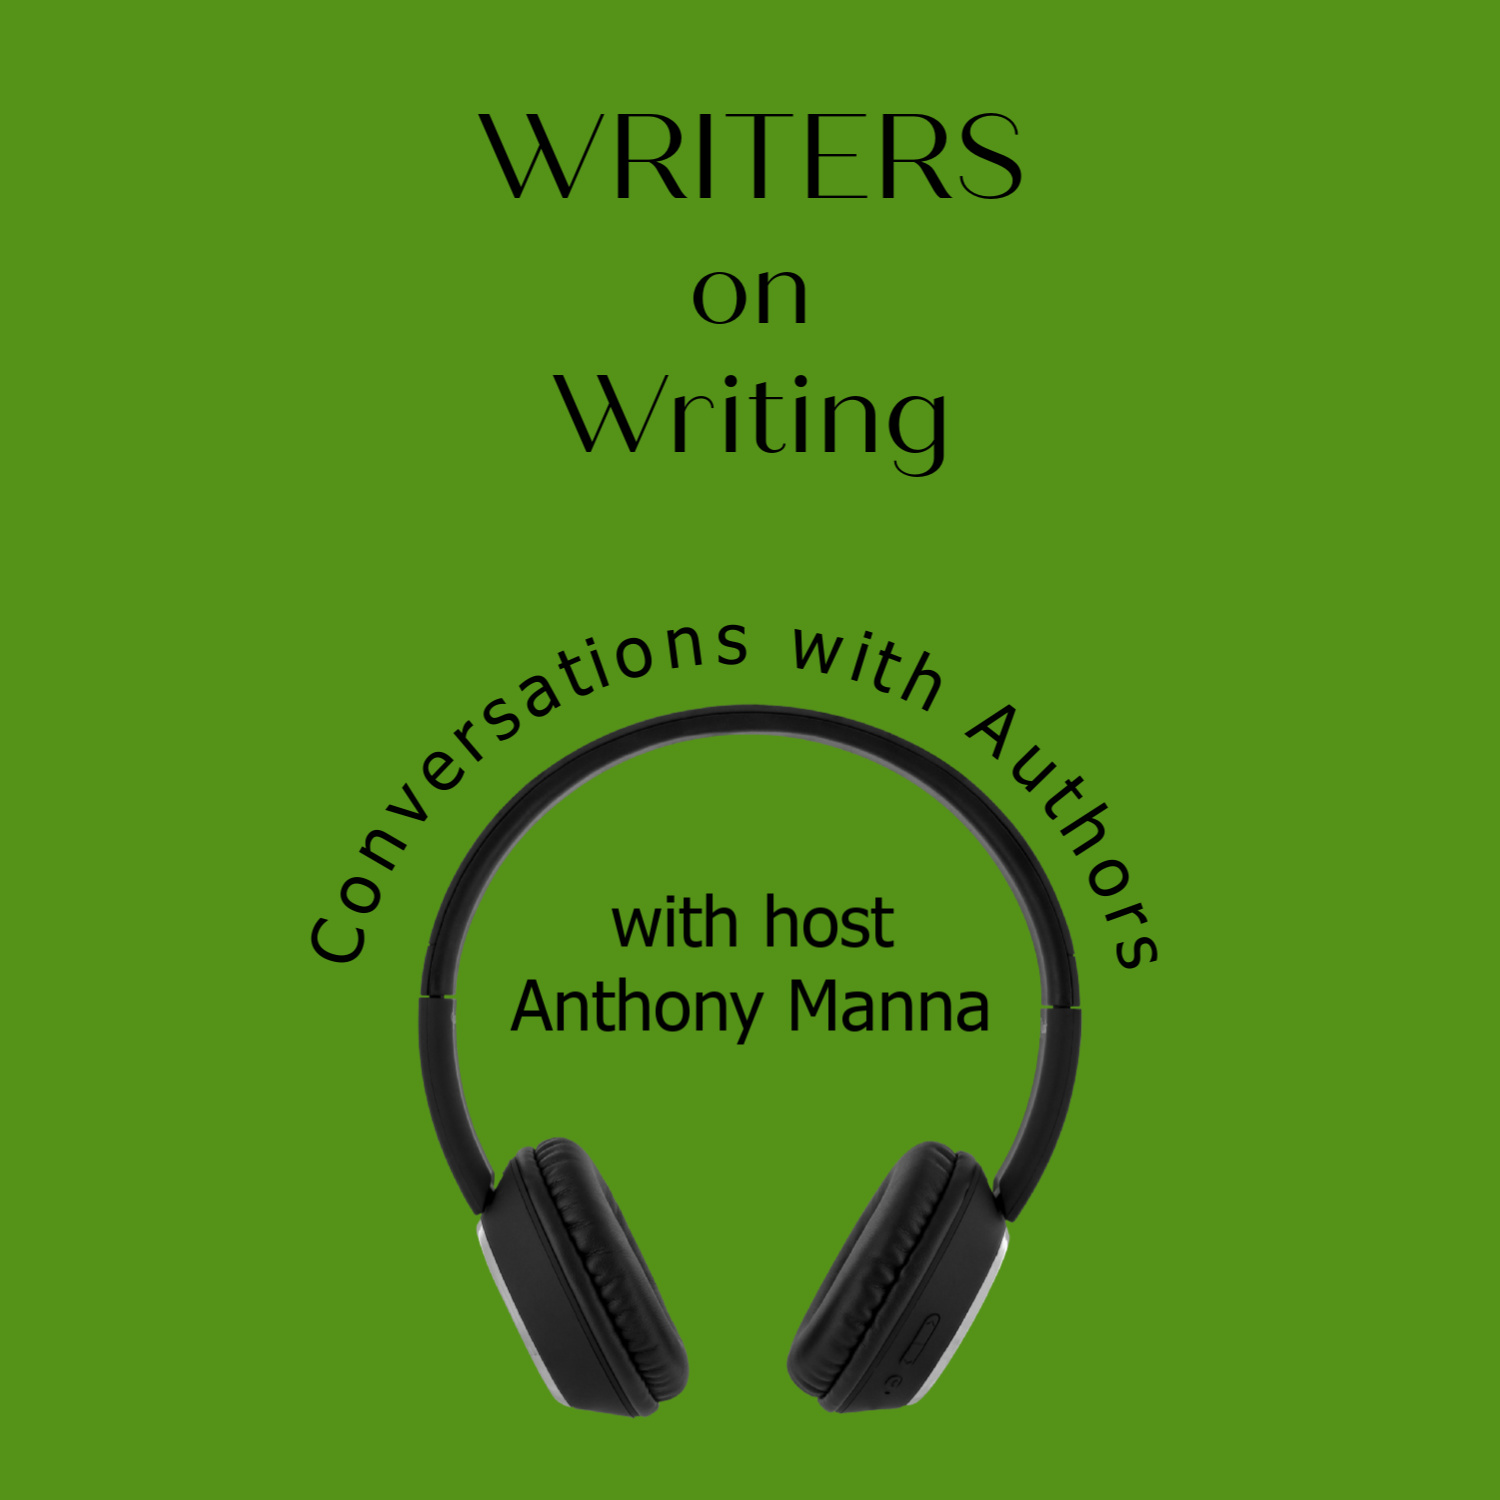 WRITERS on Writing: Conversations with Authors